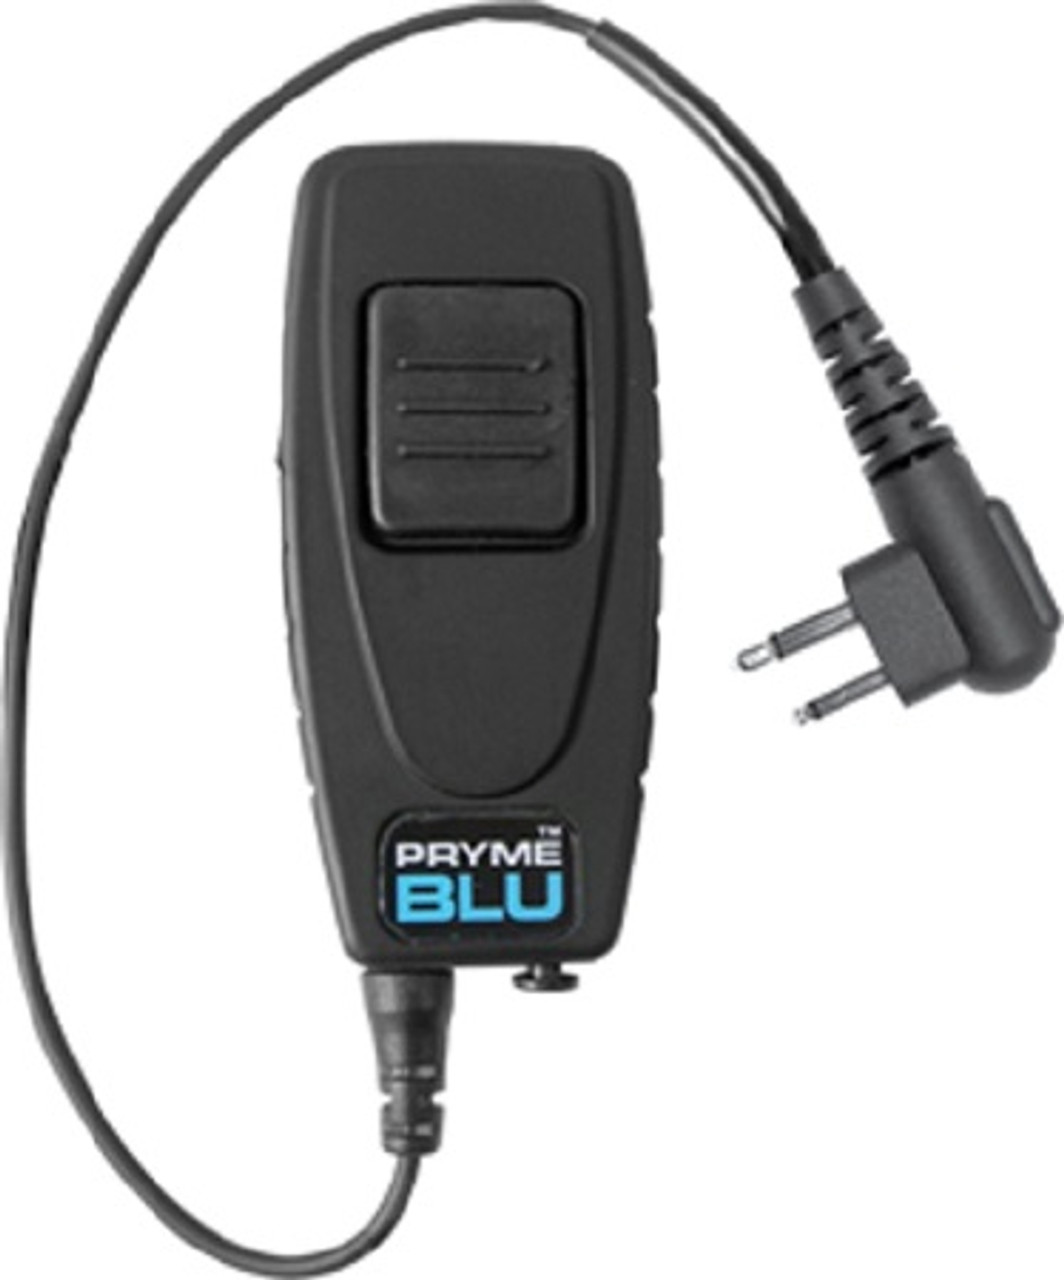 Pryme BT-500-H3 Bluetooth Dongle for Hytera Two Way Radios with 2 Pin Connection